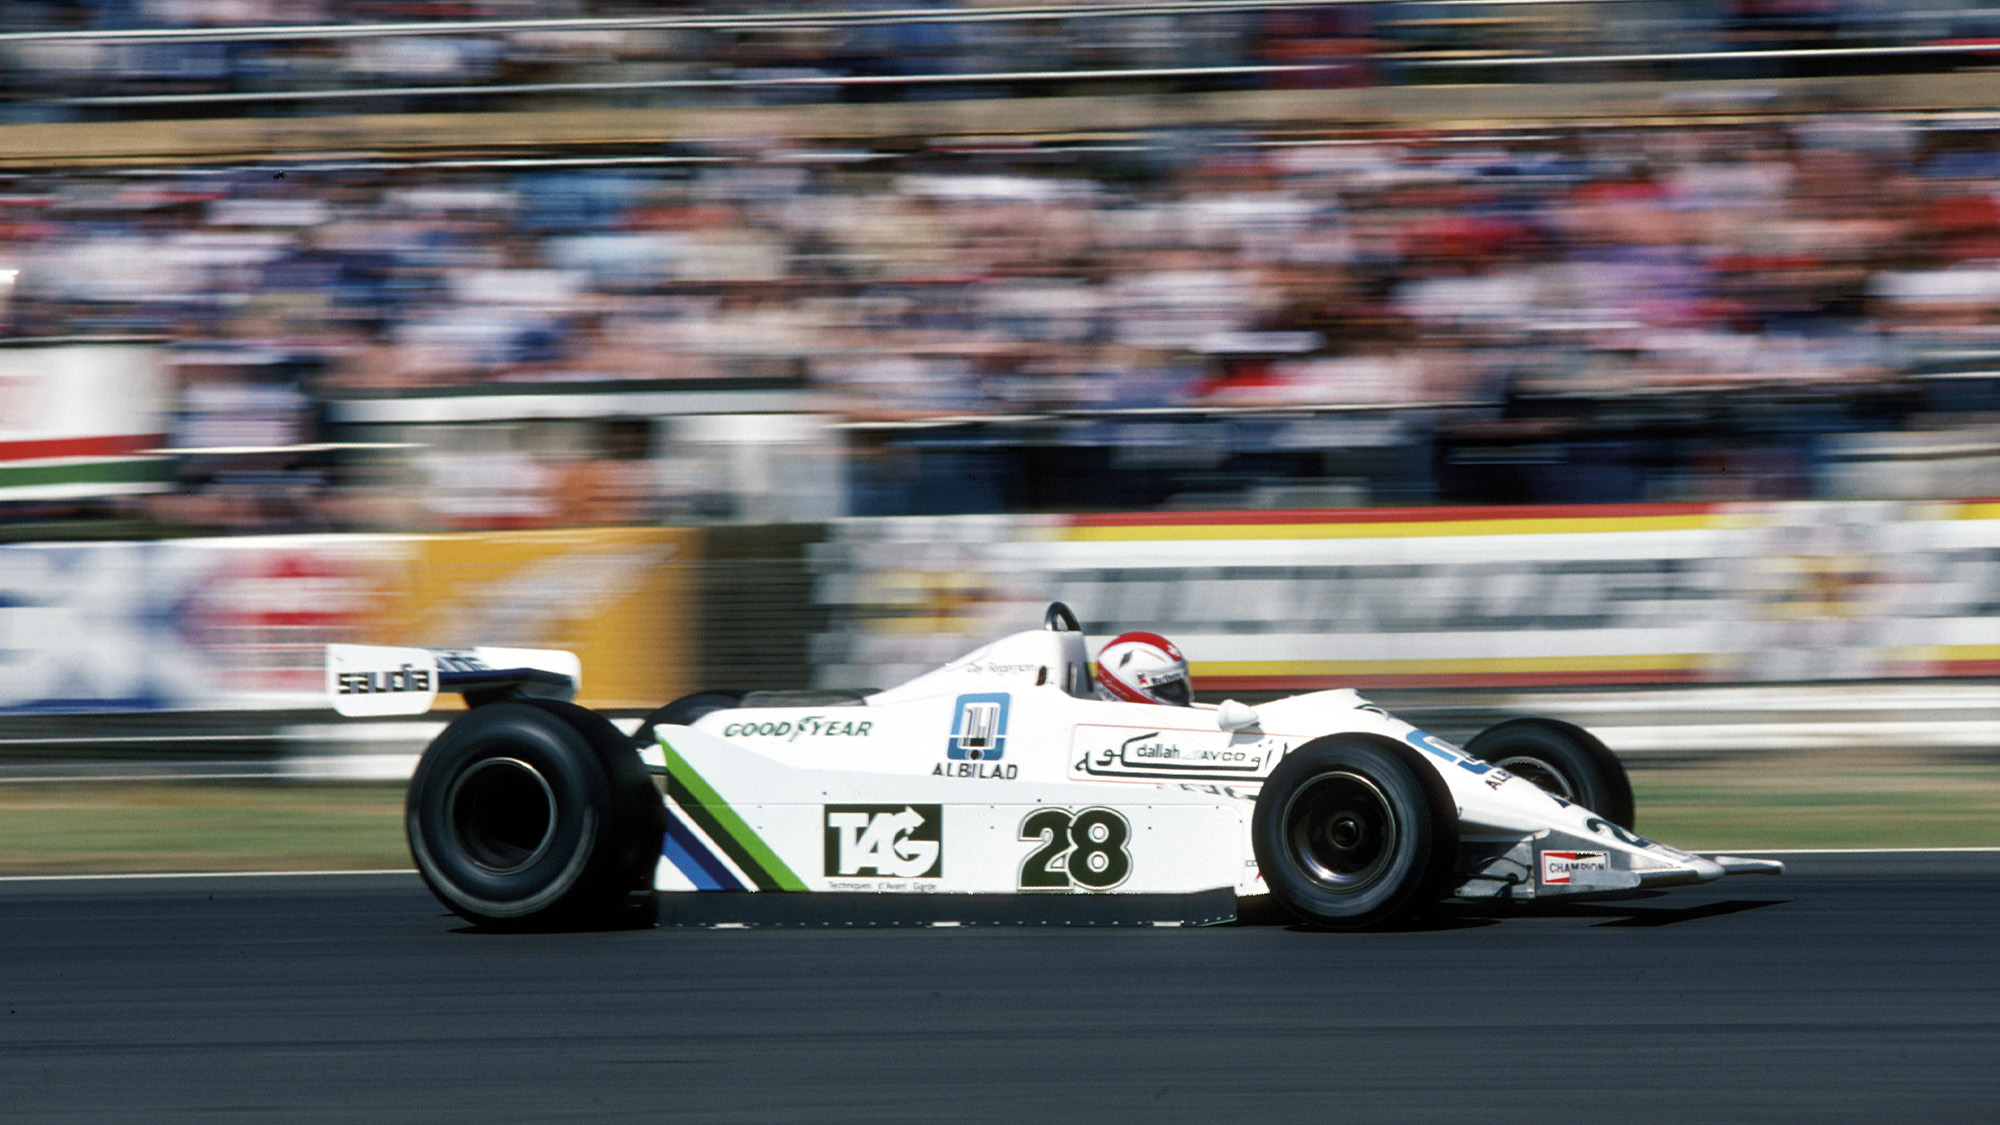 Clay Regazzoni at Silverstone on his way to winning the first F1 race for Williams at the 1979 British Grand Prix